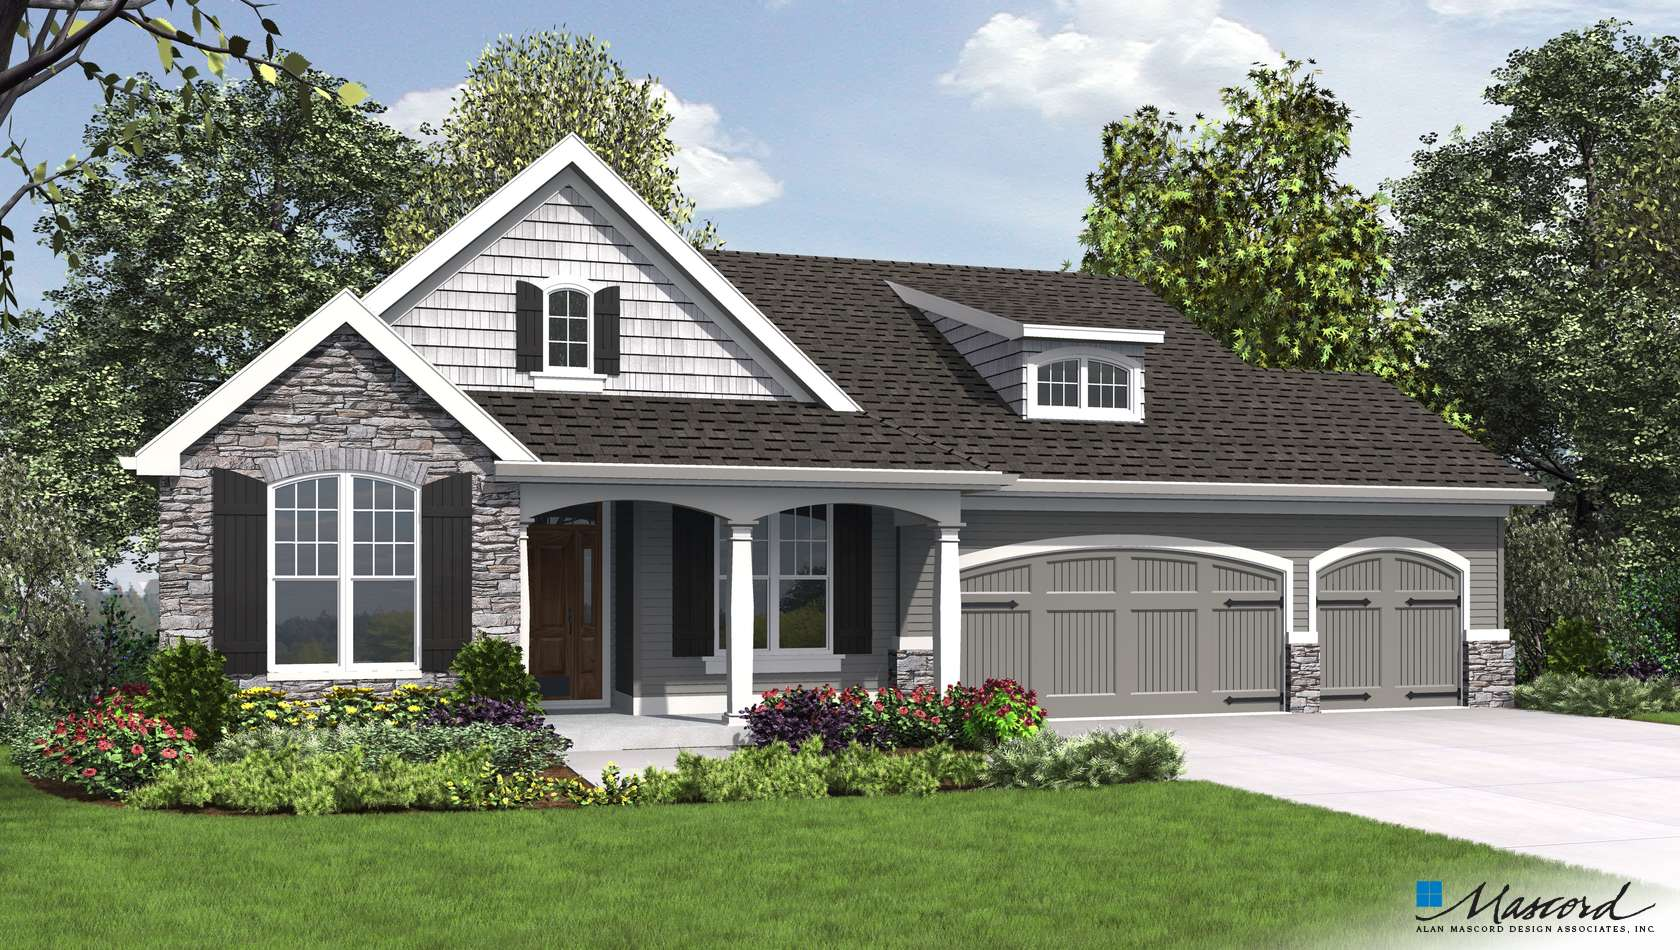 Main image for house plan 1253: The Alamosa